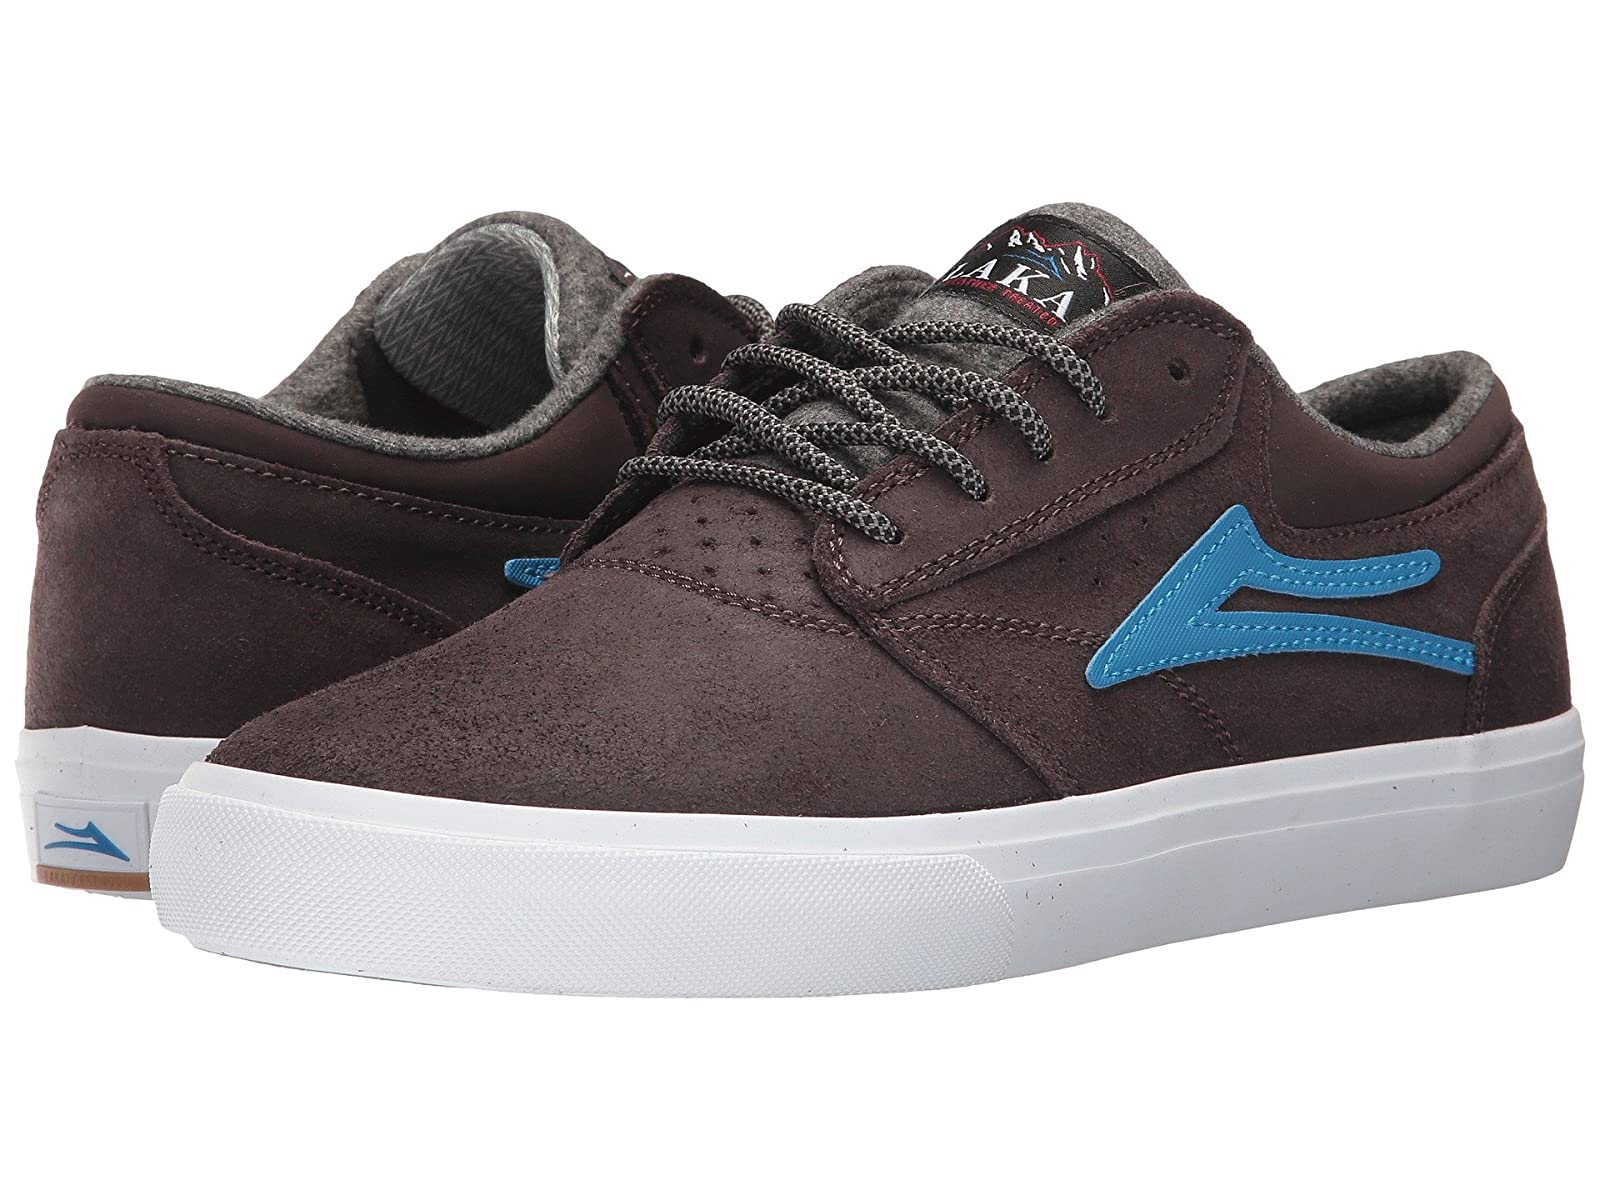 Lakai Griffin Weather TreatedCheap and distinctive eye-catching shoes